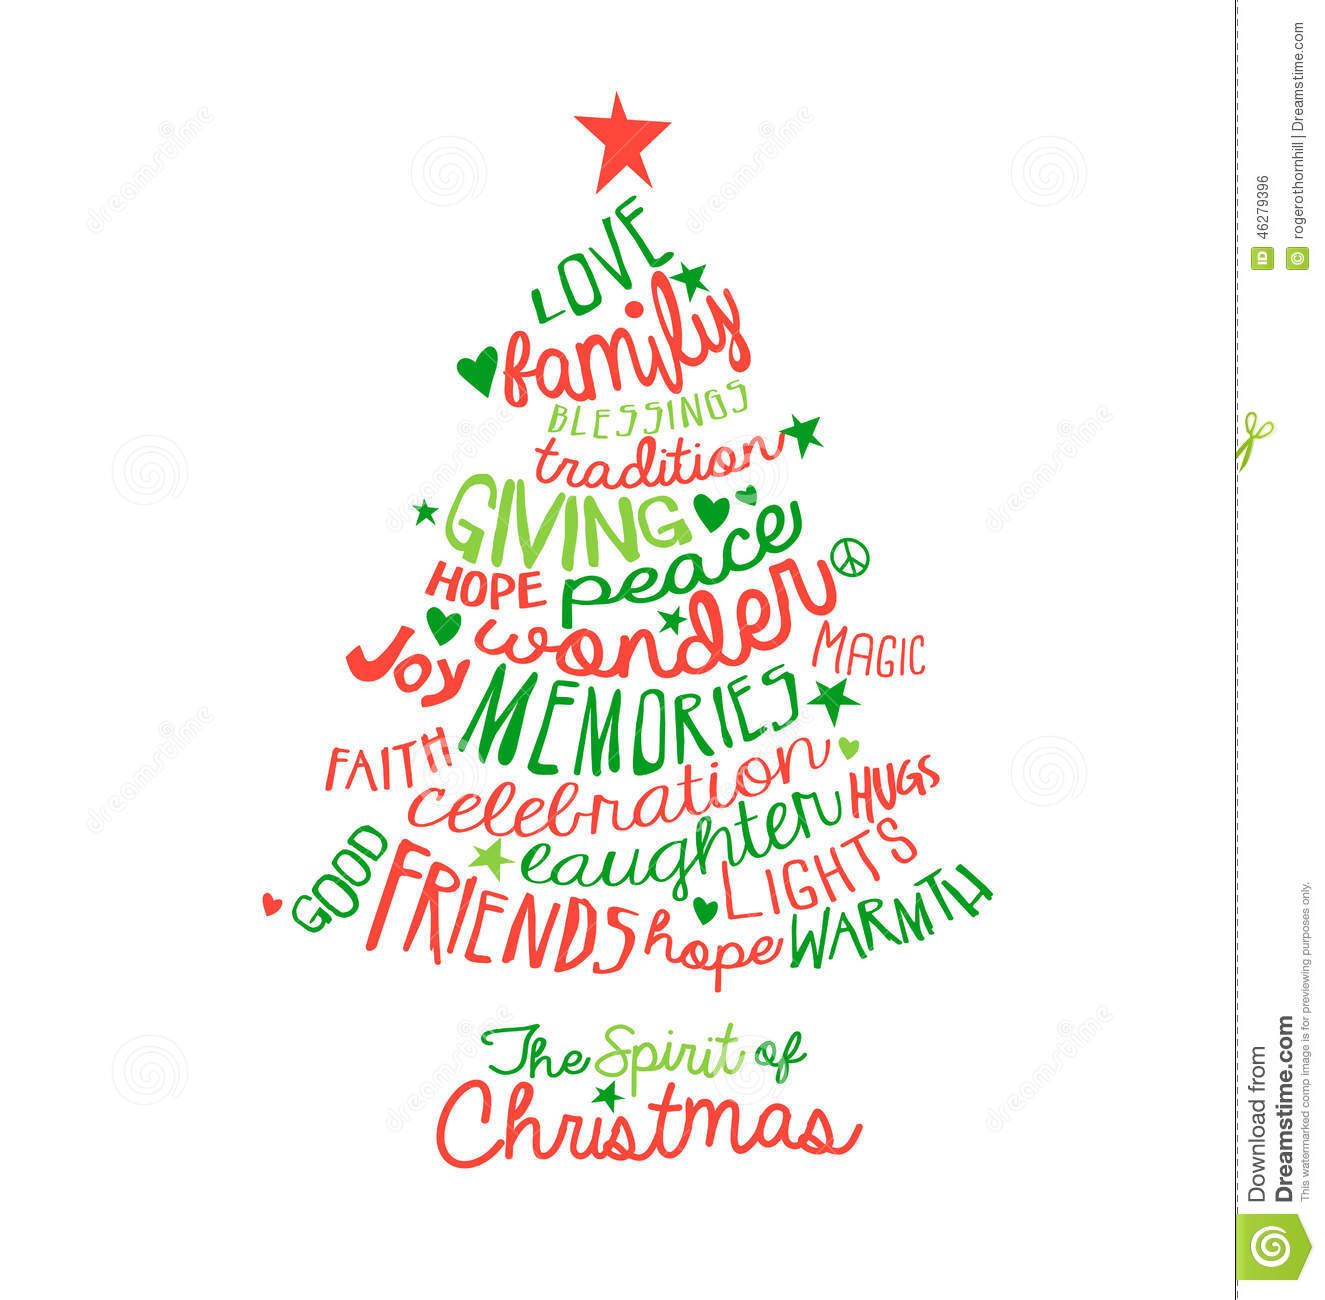 Christmas tree words clipart.